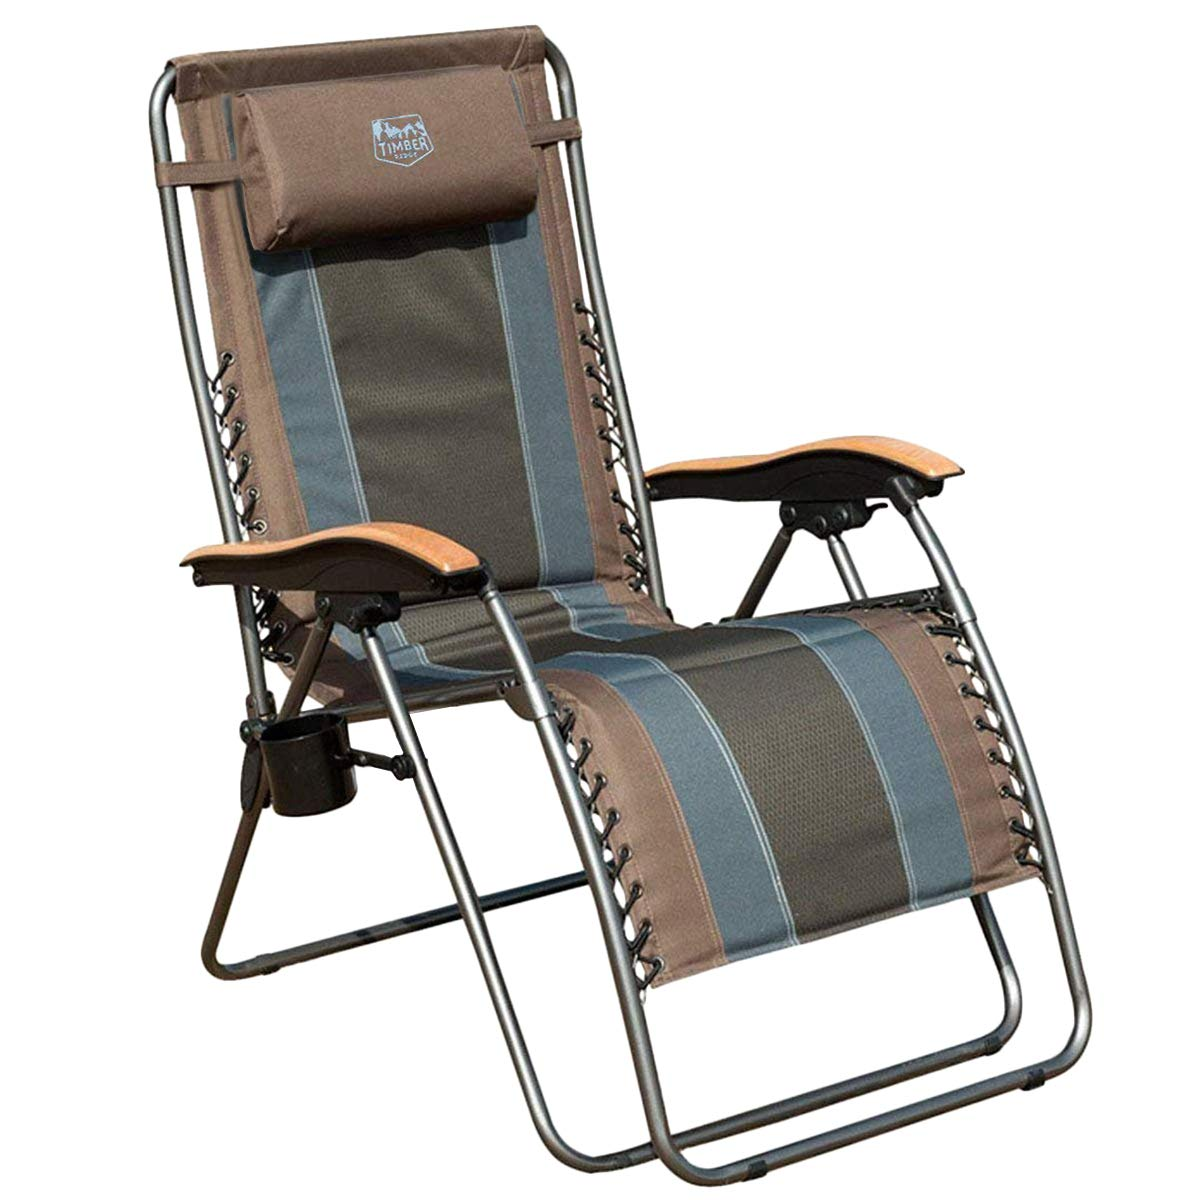 Timber Ridge Zero Gravity Locking Patio Outdoor Lounger Chair Oversize XL Padded Adjustable Recliner with Headrest Support 350lbs, Earth by Timber Ridge